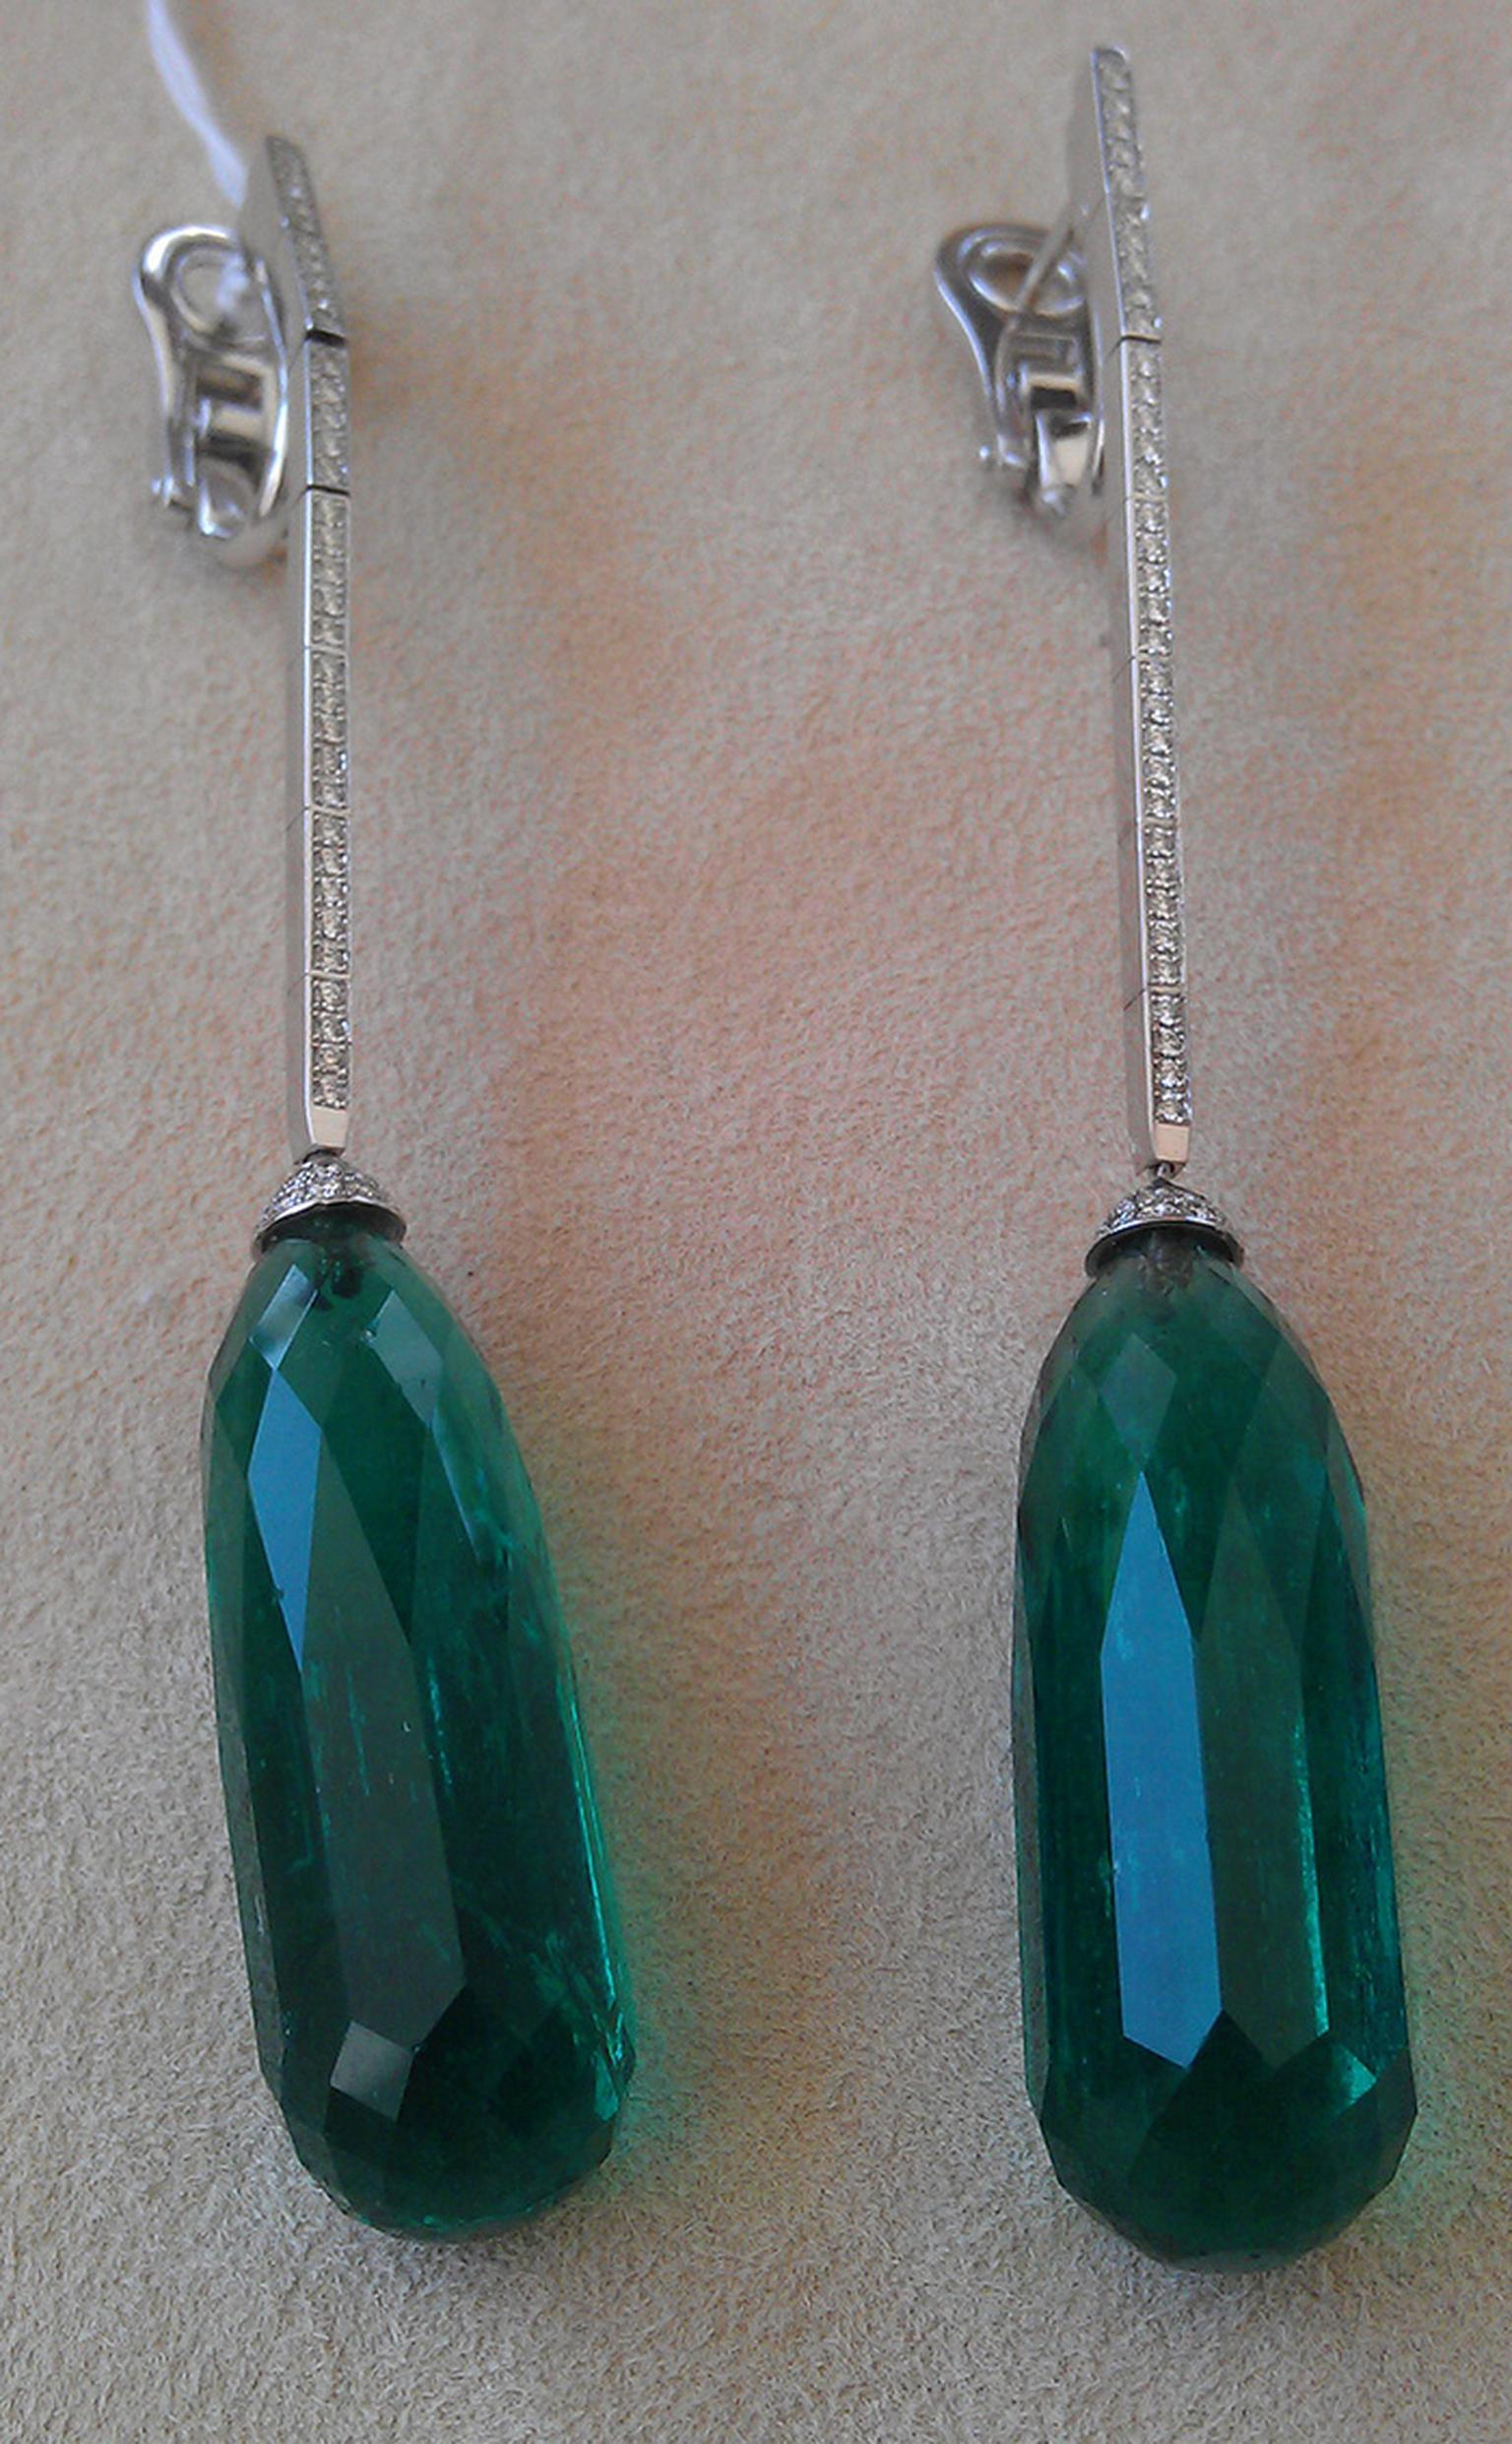 Chopard-Emerald-earrings-as-worn-by-Jane-Fonda.jpg